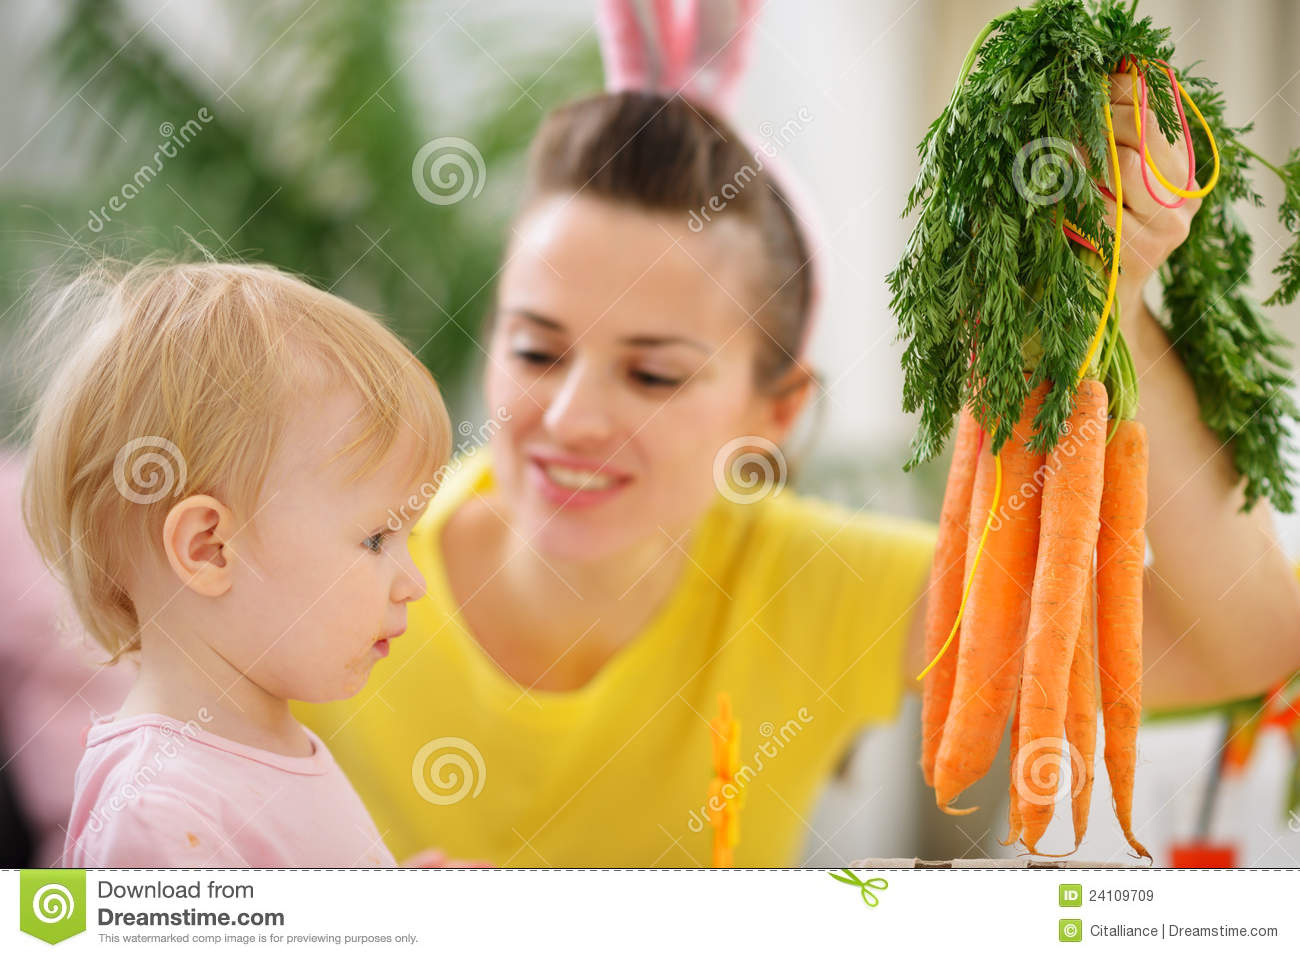 Kitchen garden stock photos royalty free images amp vectors - Woman Washing Carrots Royalty Free Stock Images Apps